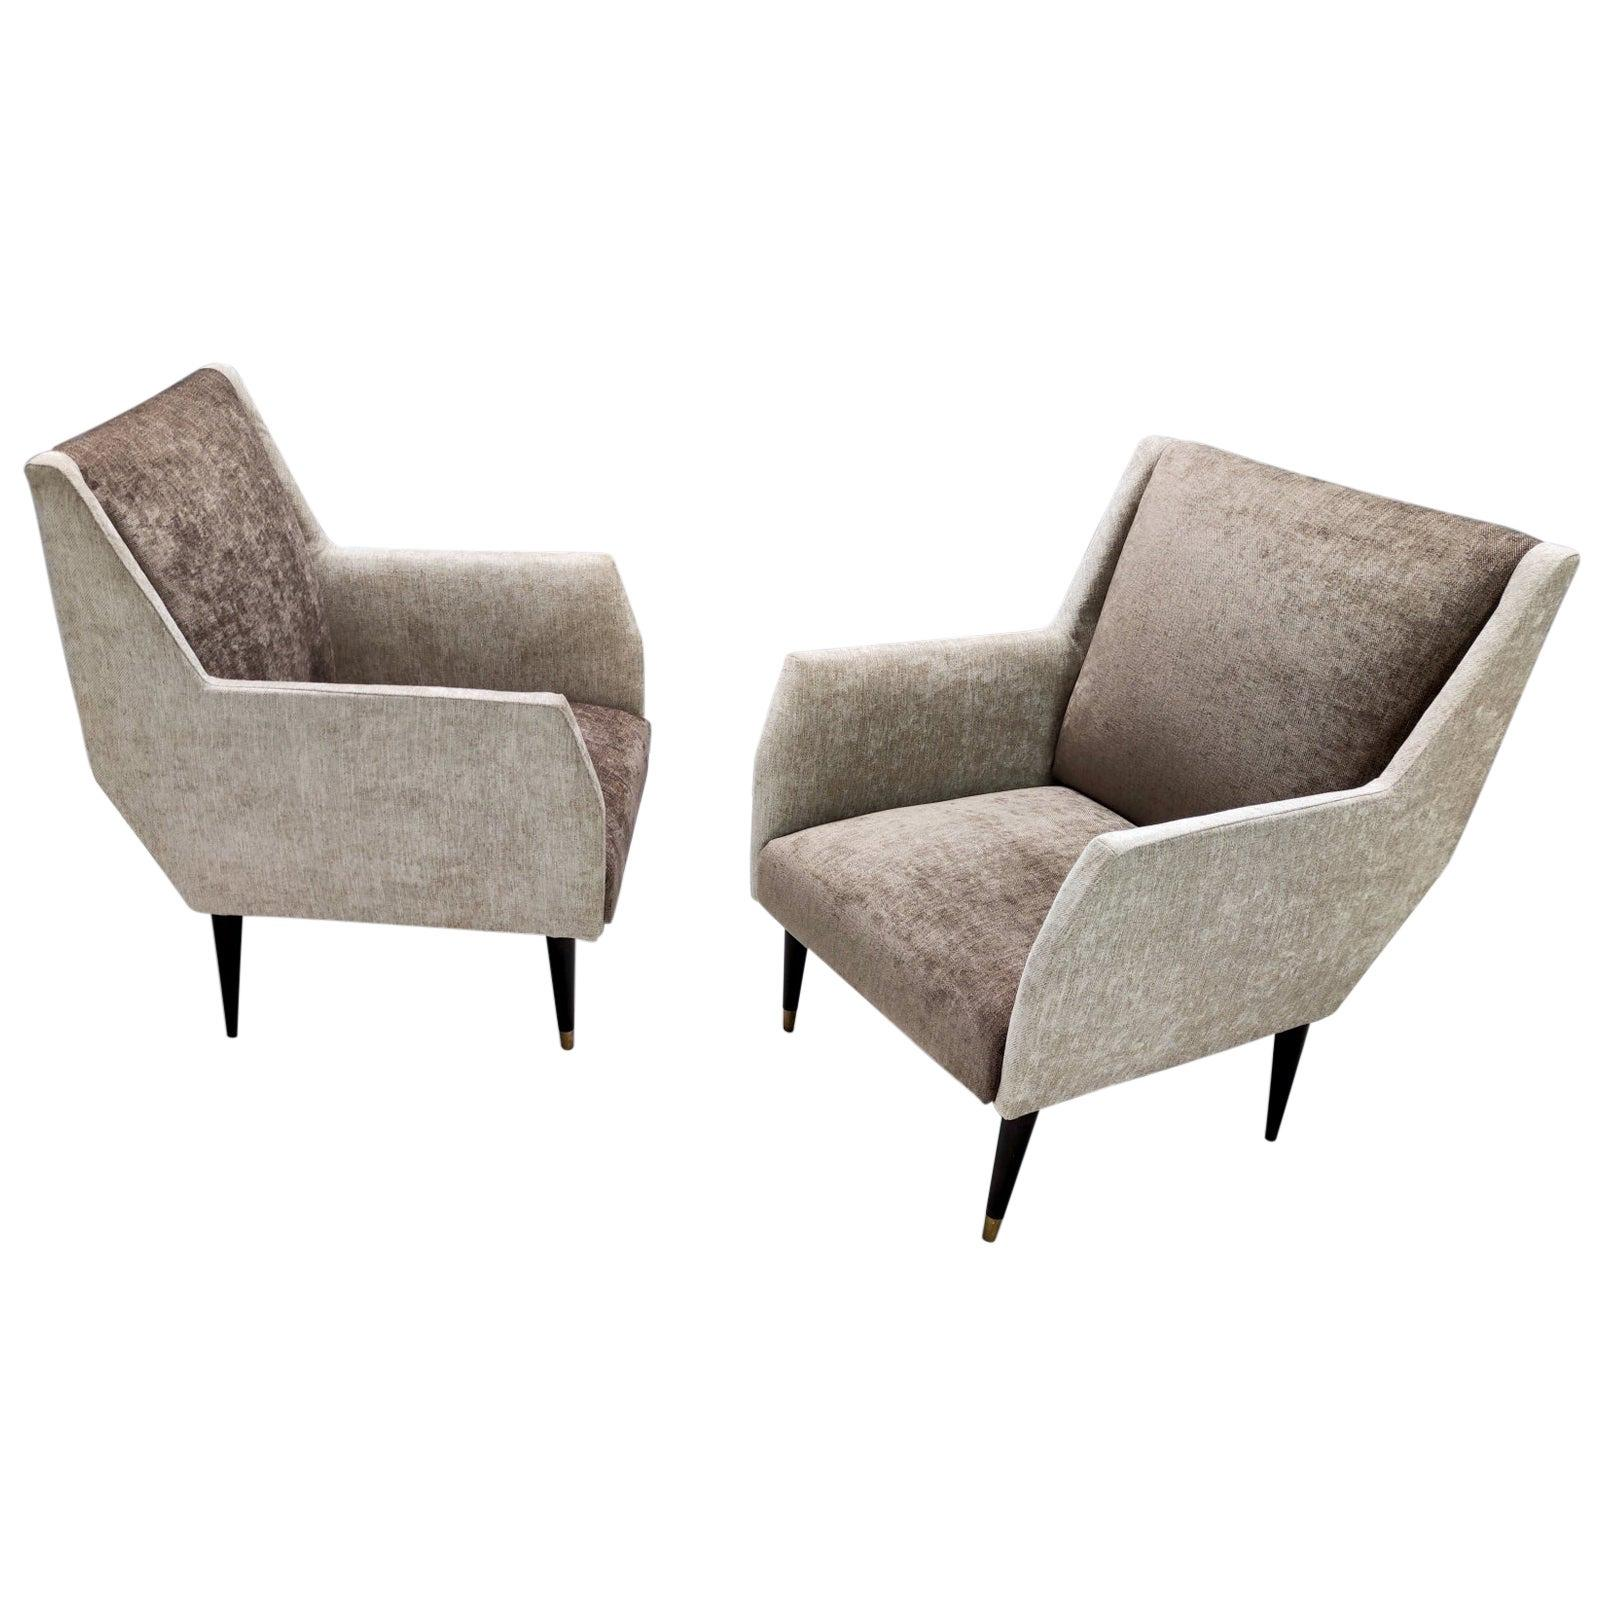 Pair of Pearl Grey and Taupe Velvet Armchairs Ascrib. to Carlo de Carli, Italy